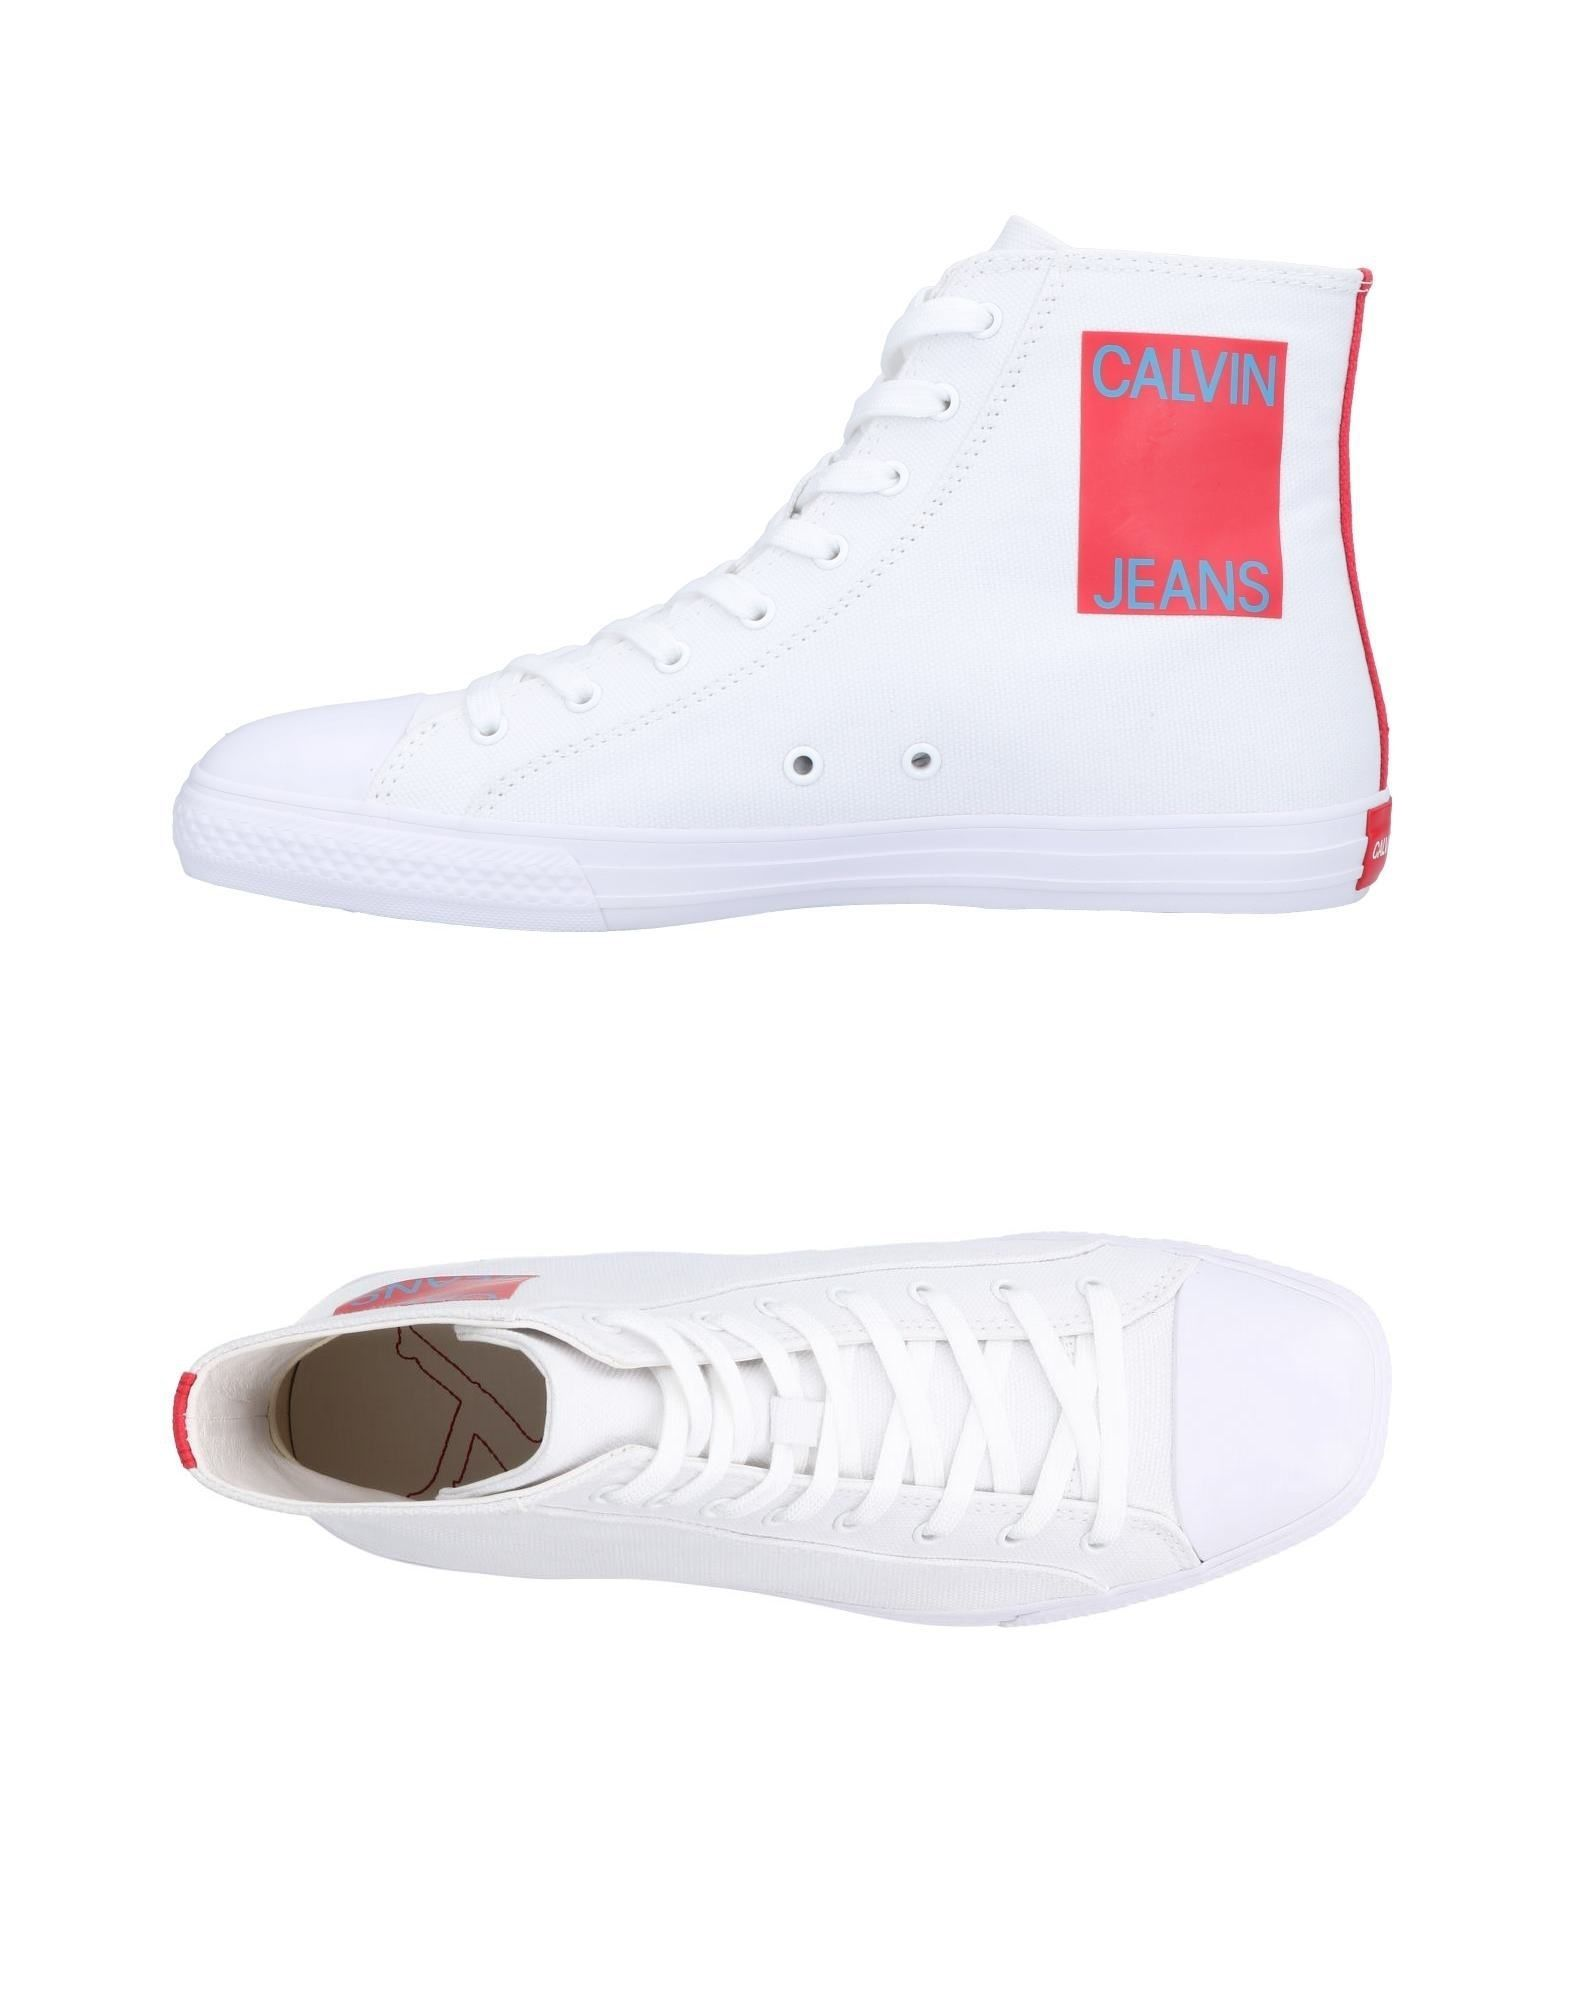 Sneakers Calvin Klein 205W39nyc Uomo - 11468033JP